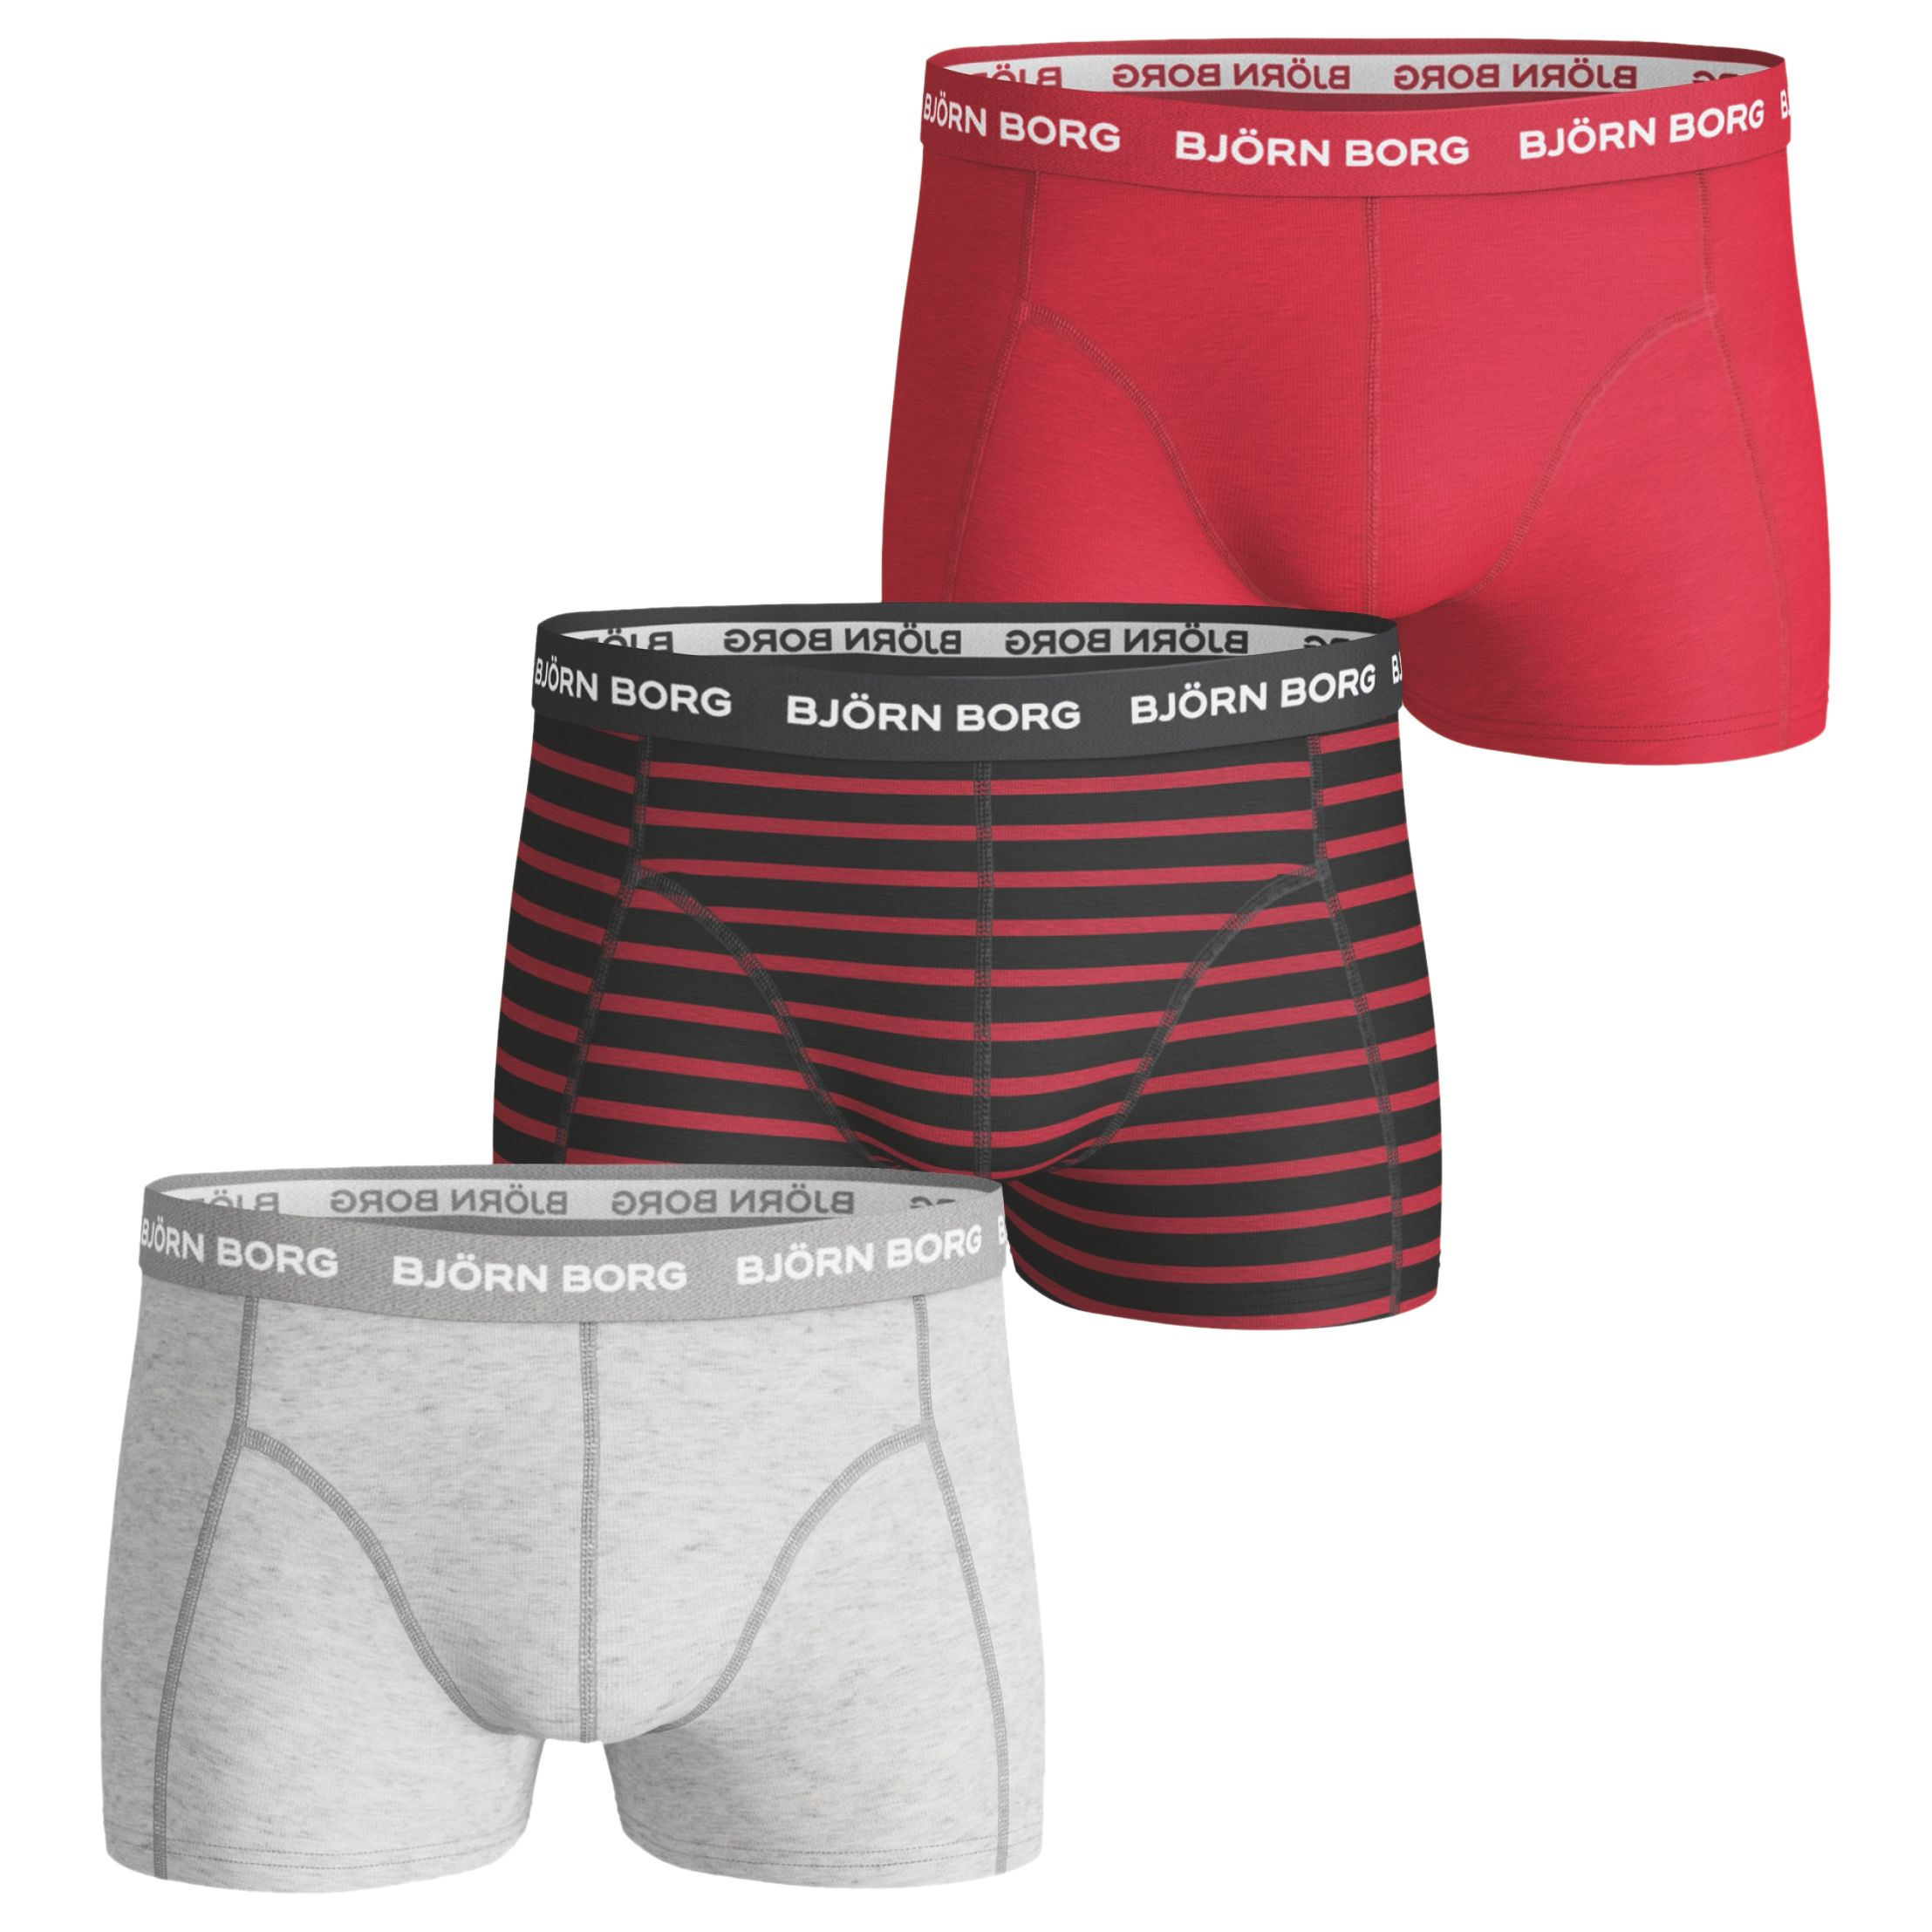 Bjorn Borg Bjorn Borg Noos Stripe Plain Trunks, Pack of 3